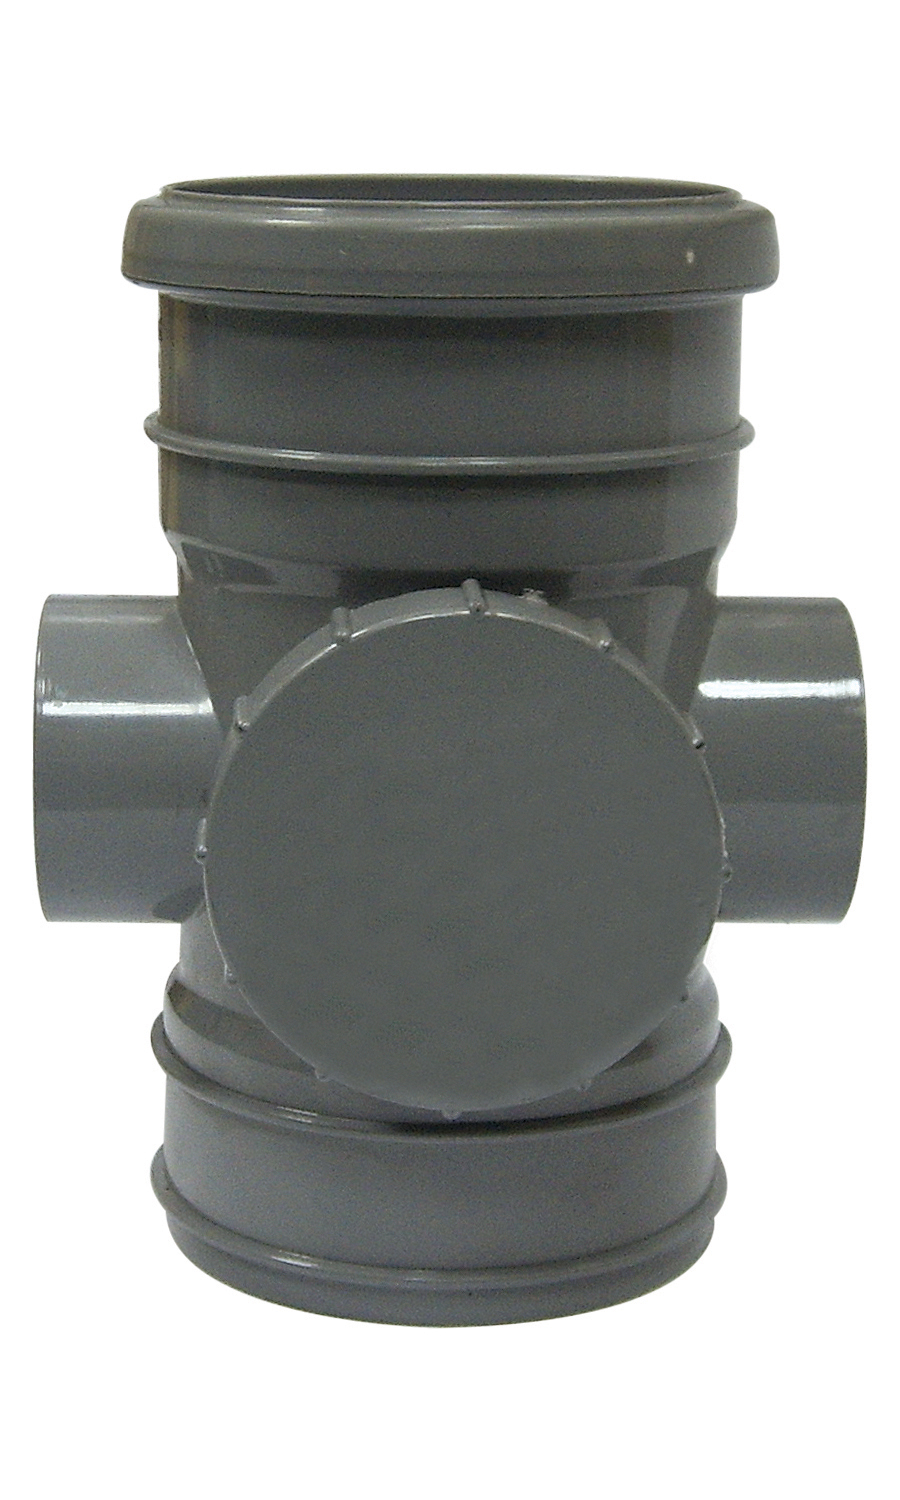 "Floplast SP275GR 110mm/4"" Ring Seal Soil System - Access Pipe Double Socket - Grey"